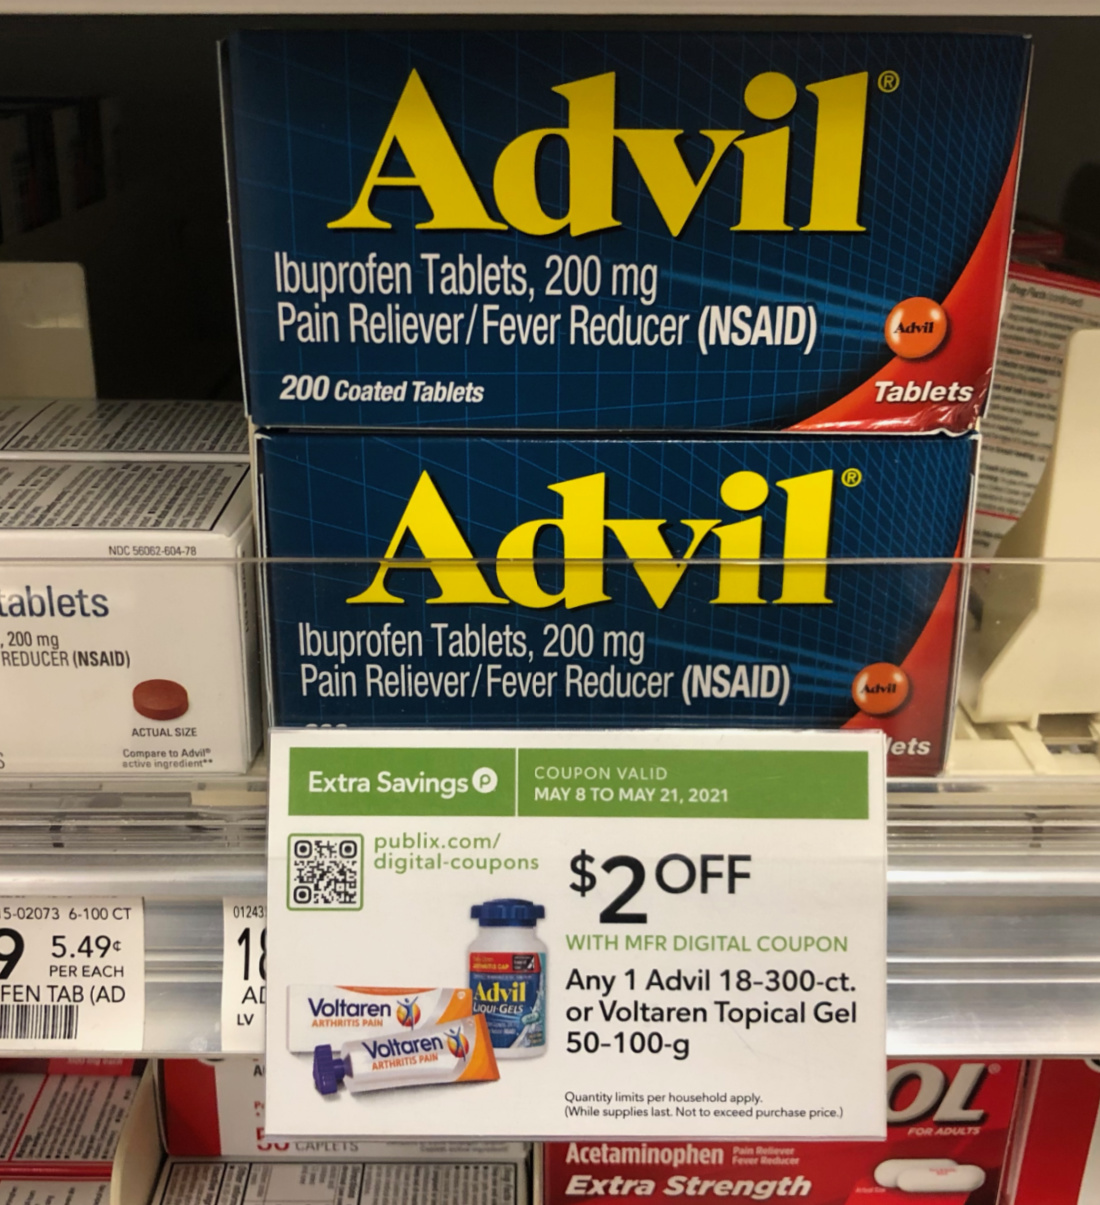 Advil As Low As $11.49 At Publix (Regular Price $18.49!) on I Heart Publix